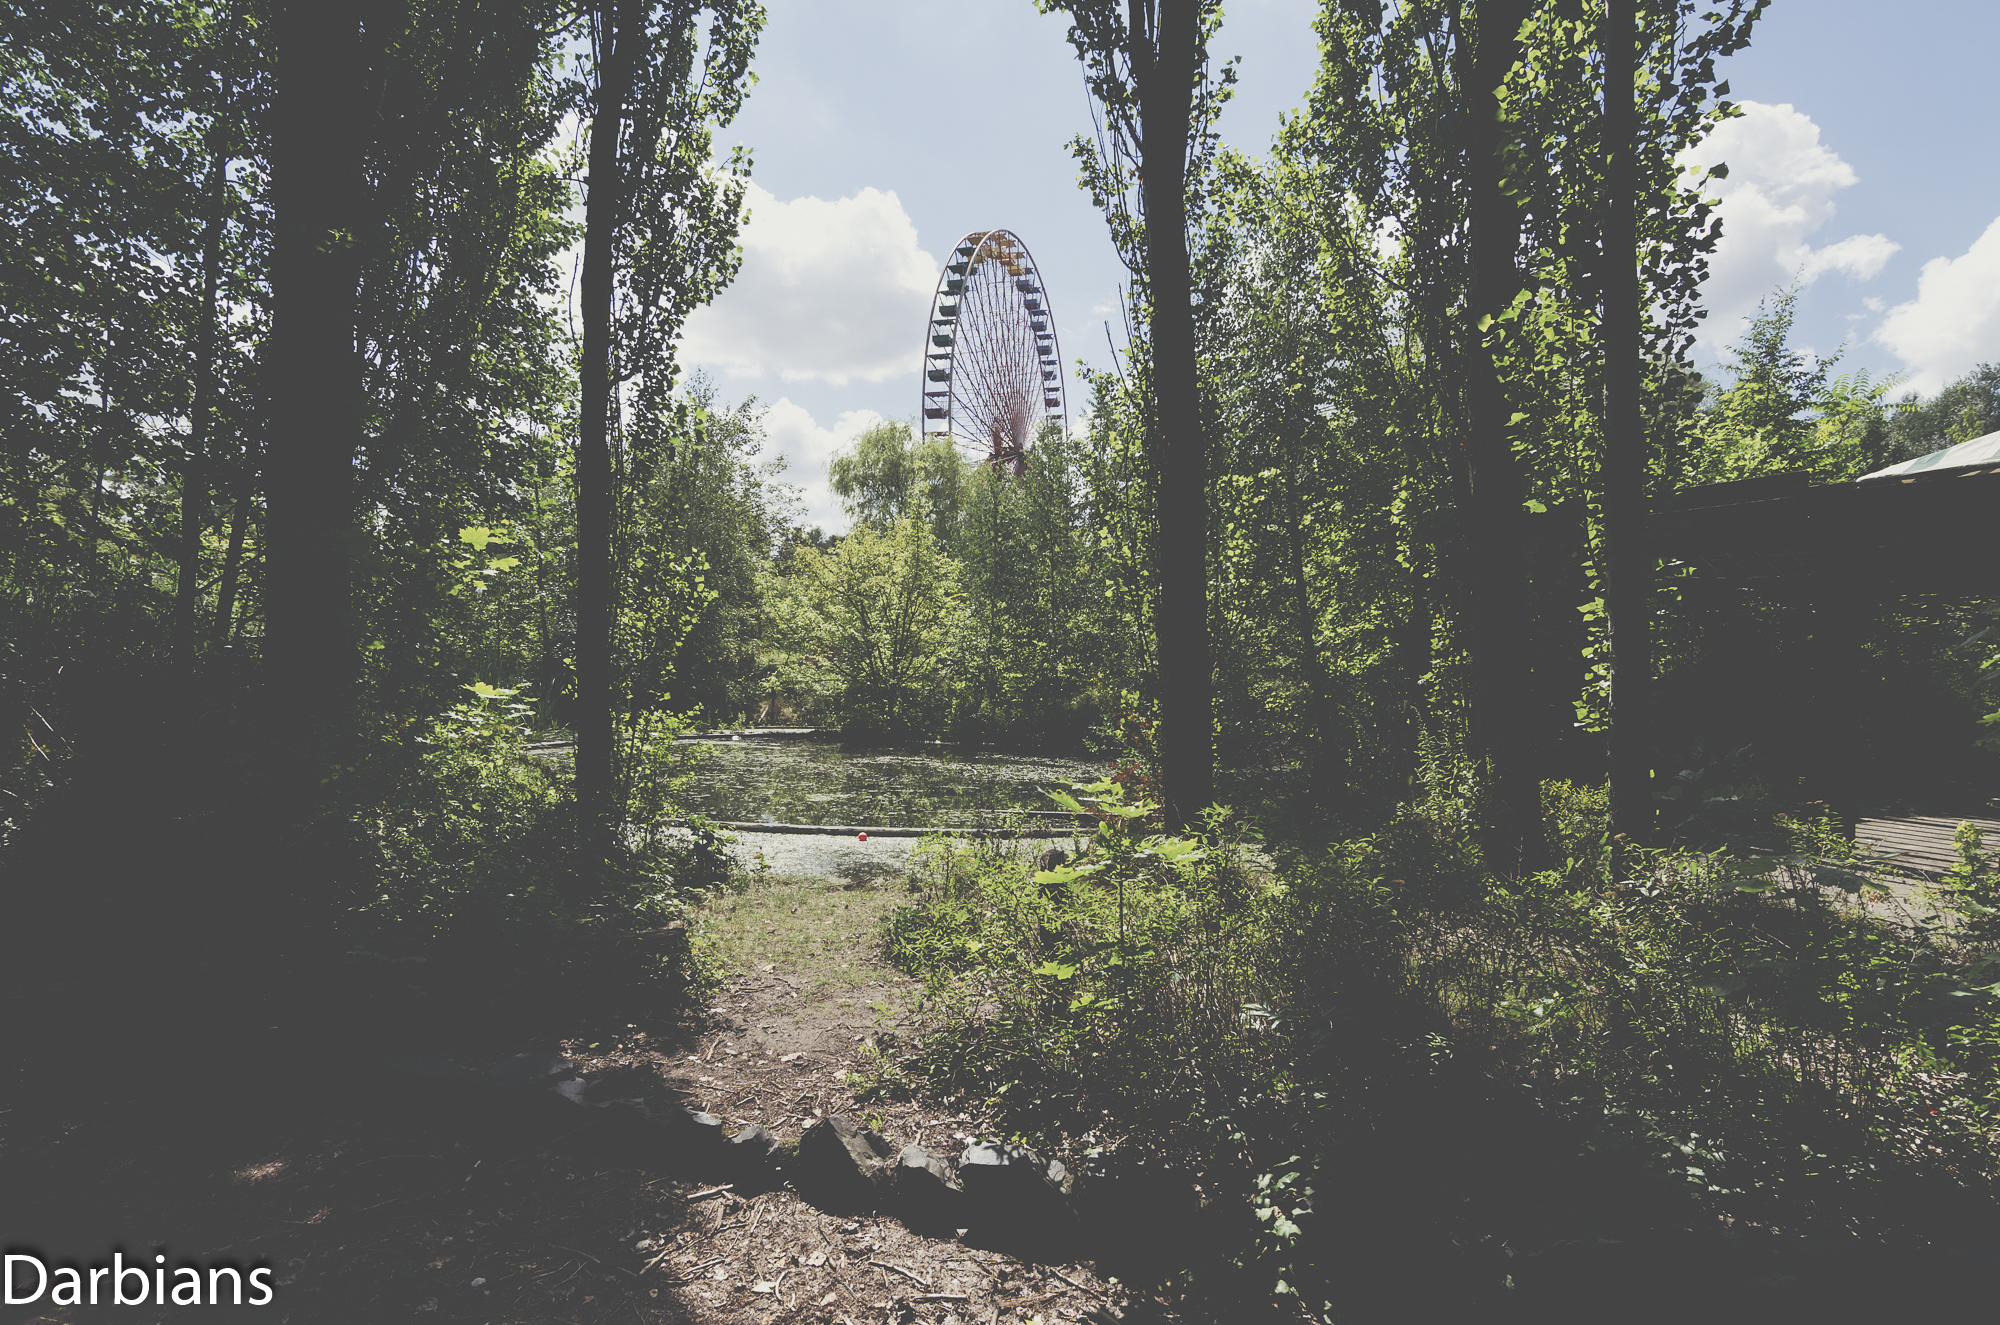 The big wheel from the surrounding woods.